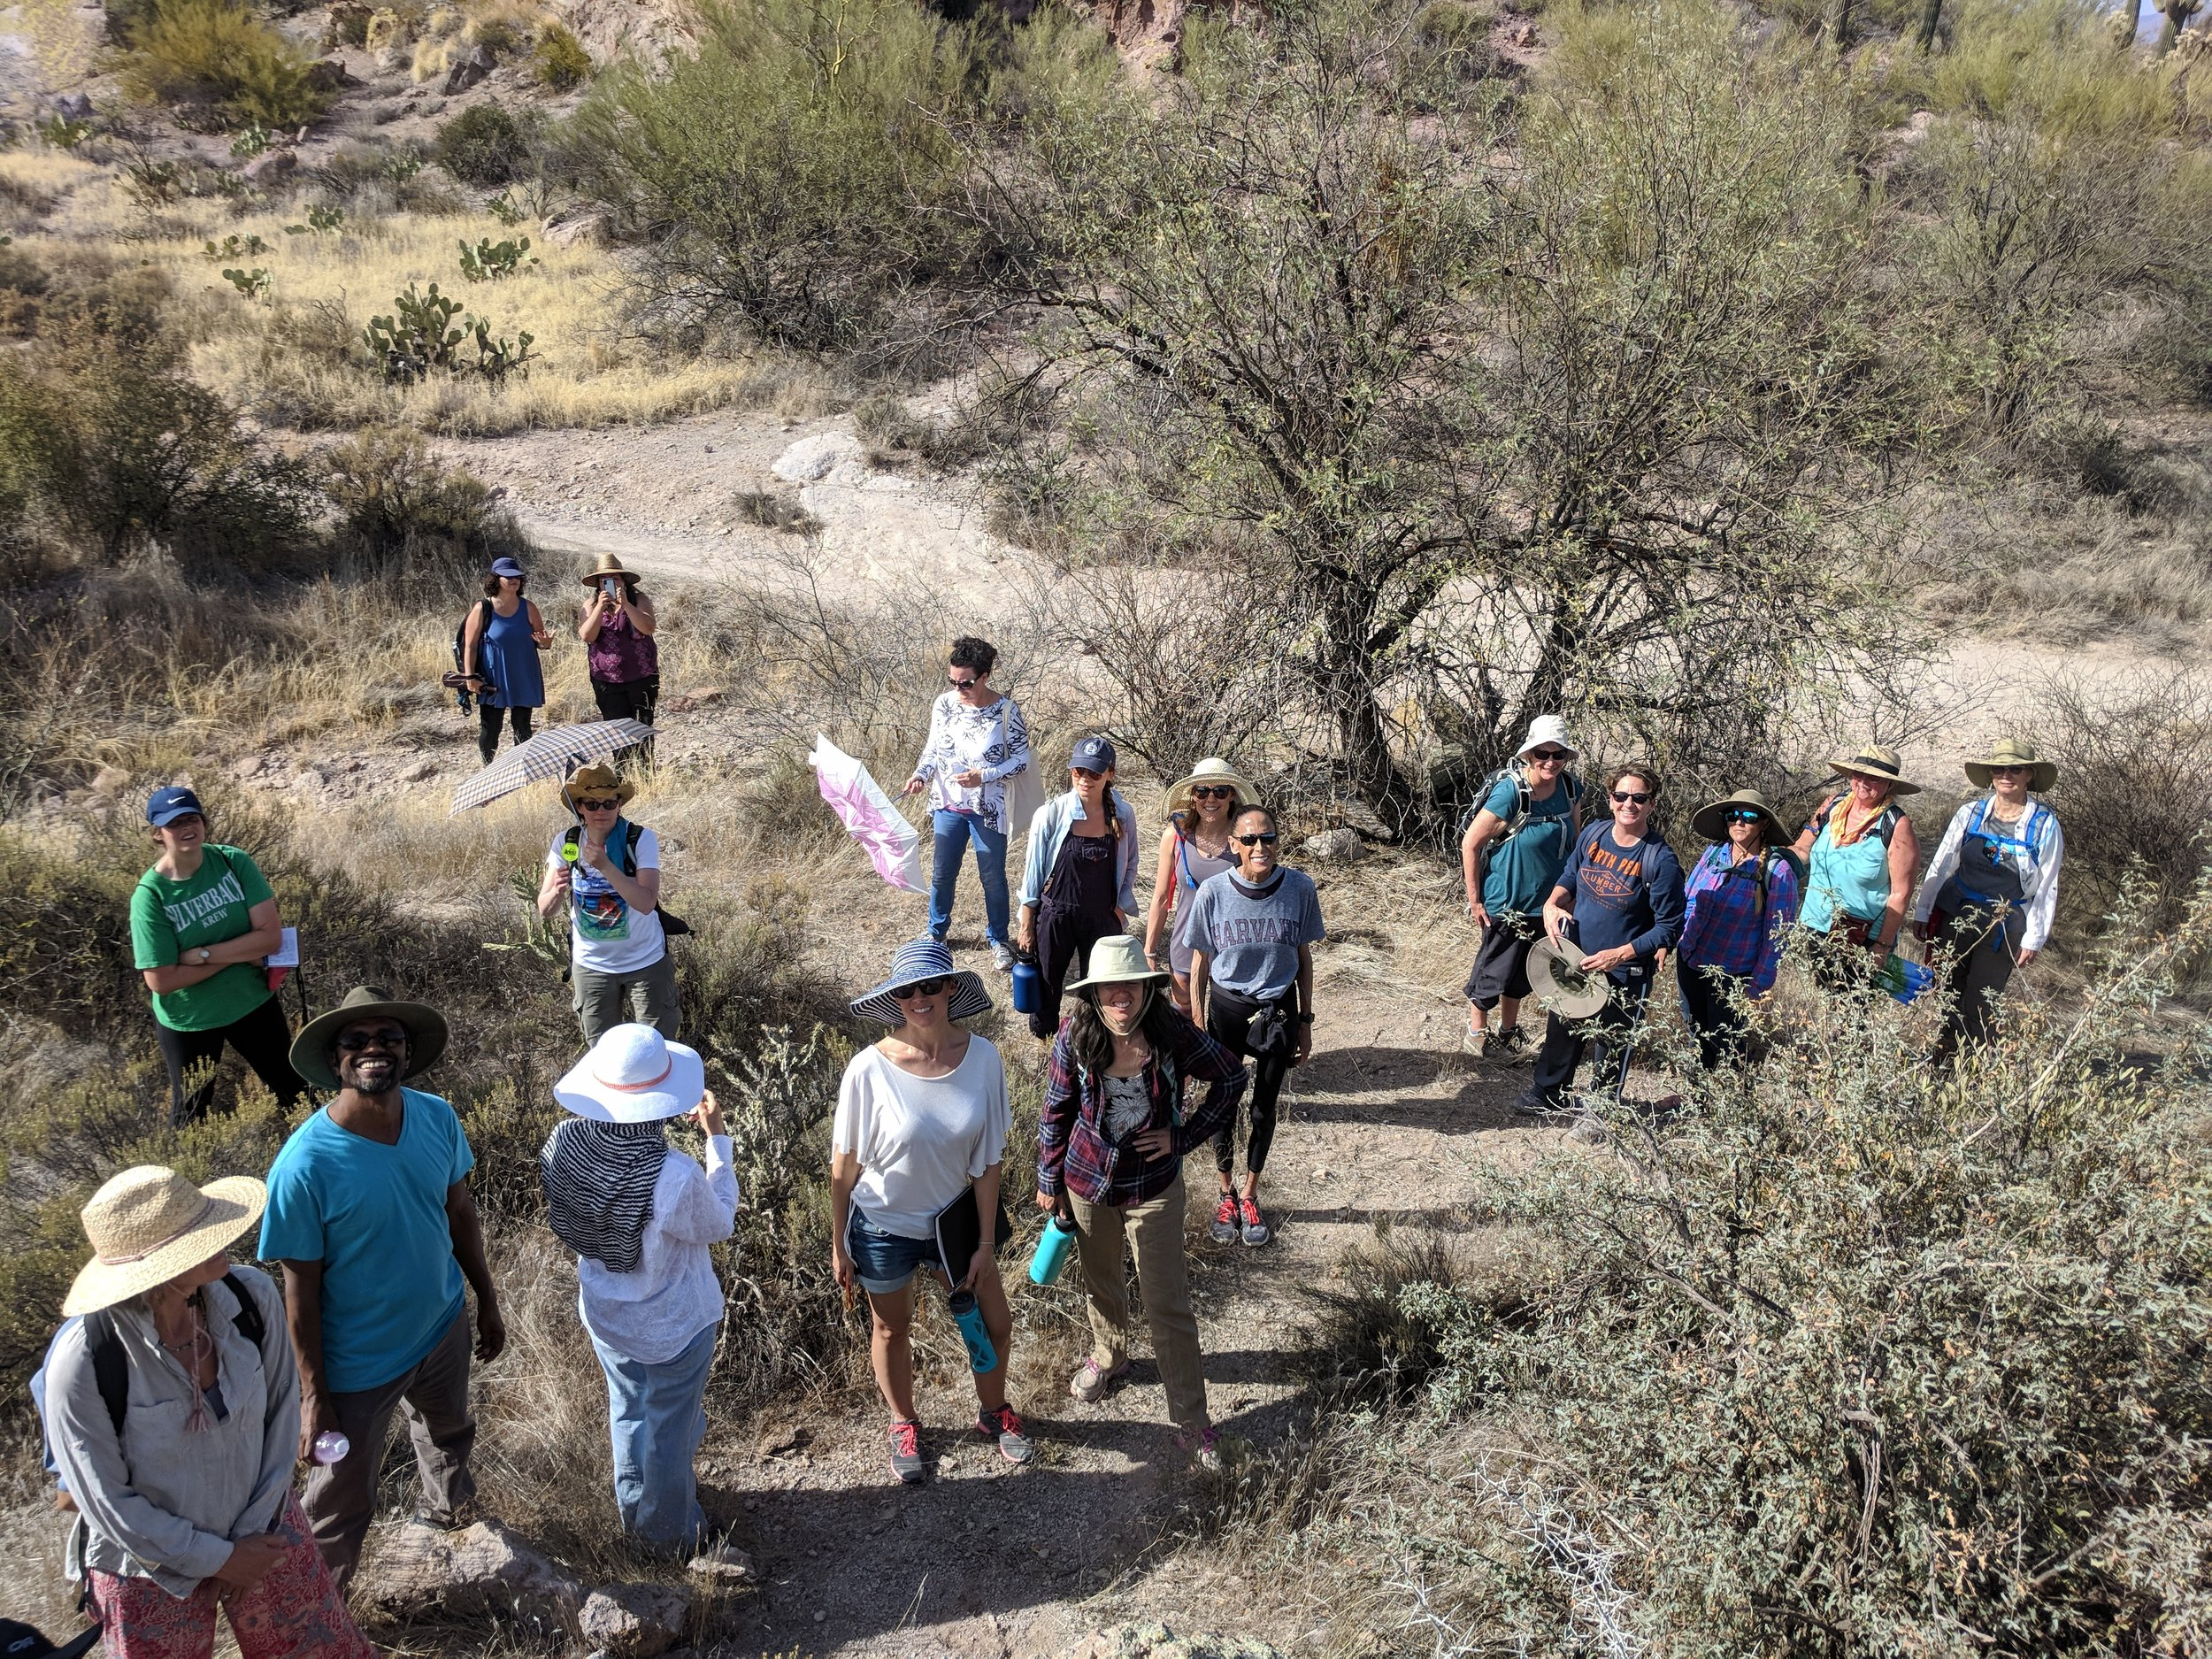 A group of intrepid explorers on a guided desert hike in April 2018